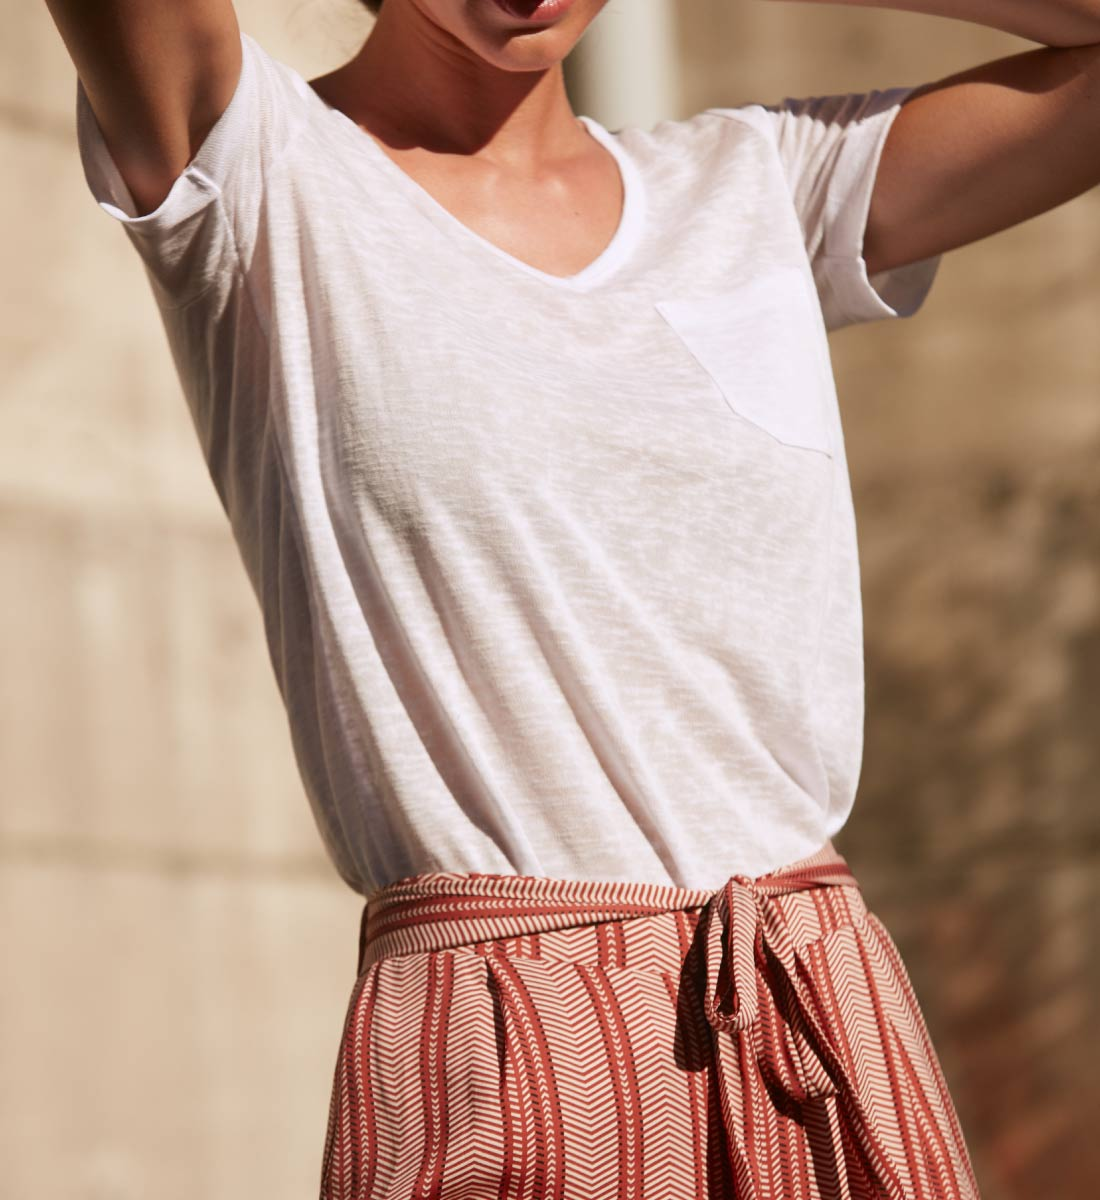 5 Summer Looks For Women in their 40s.